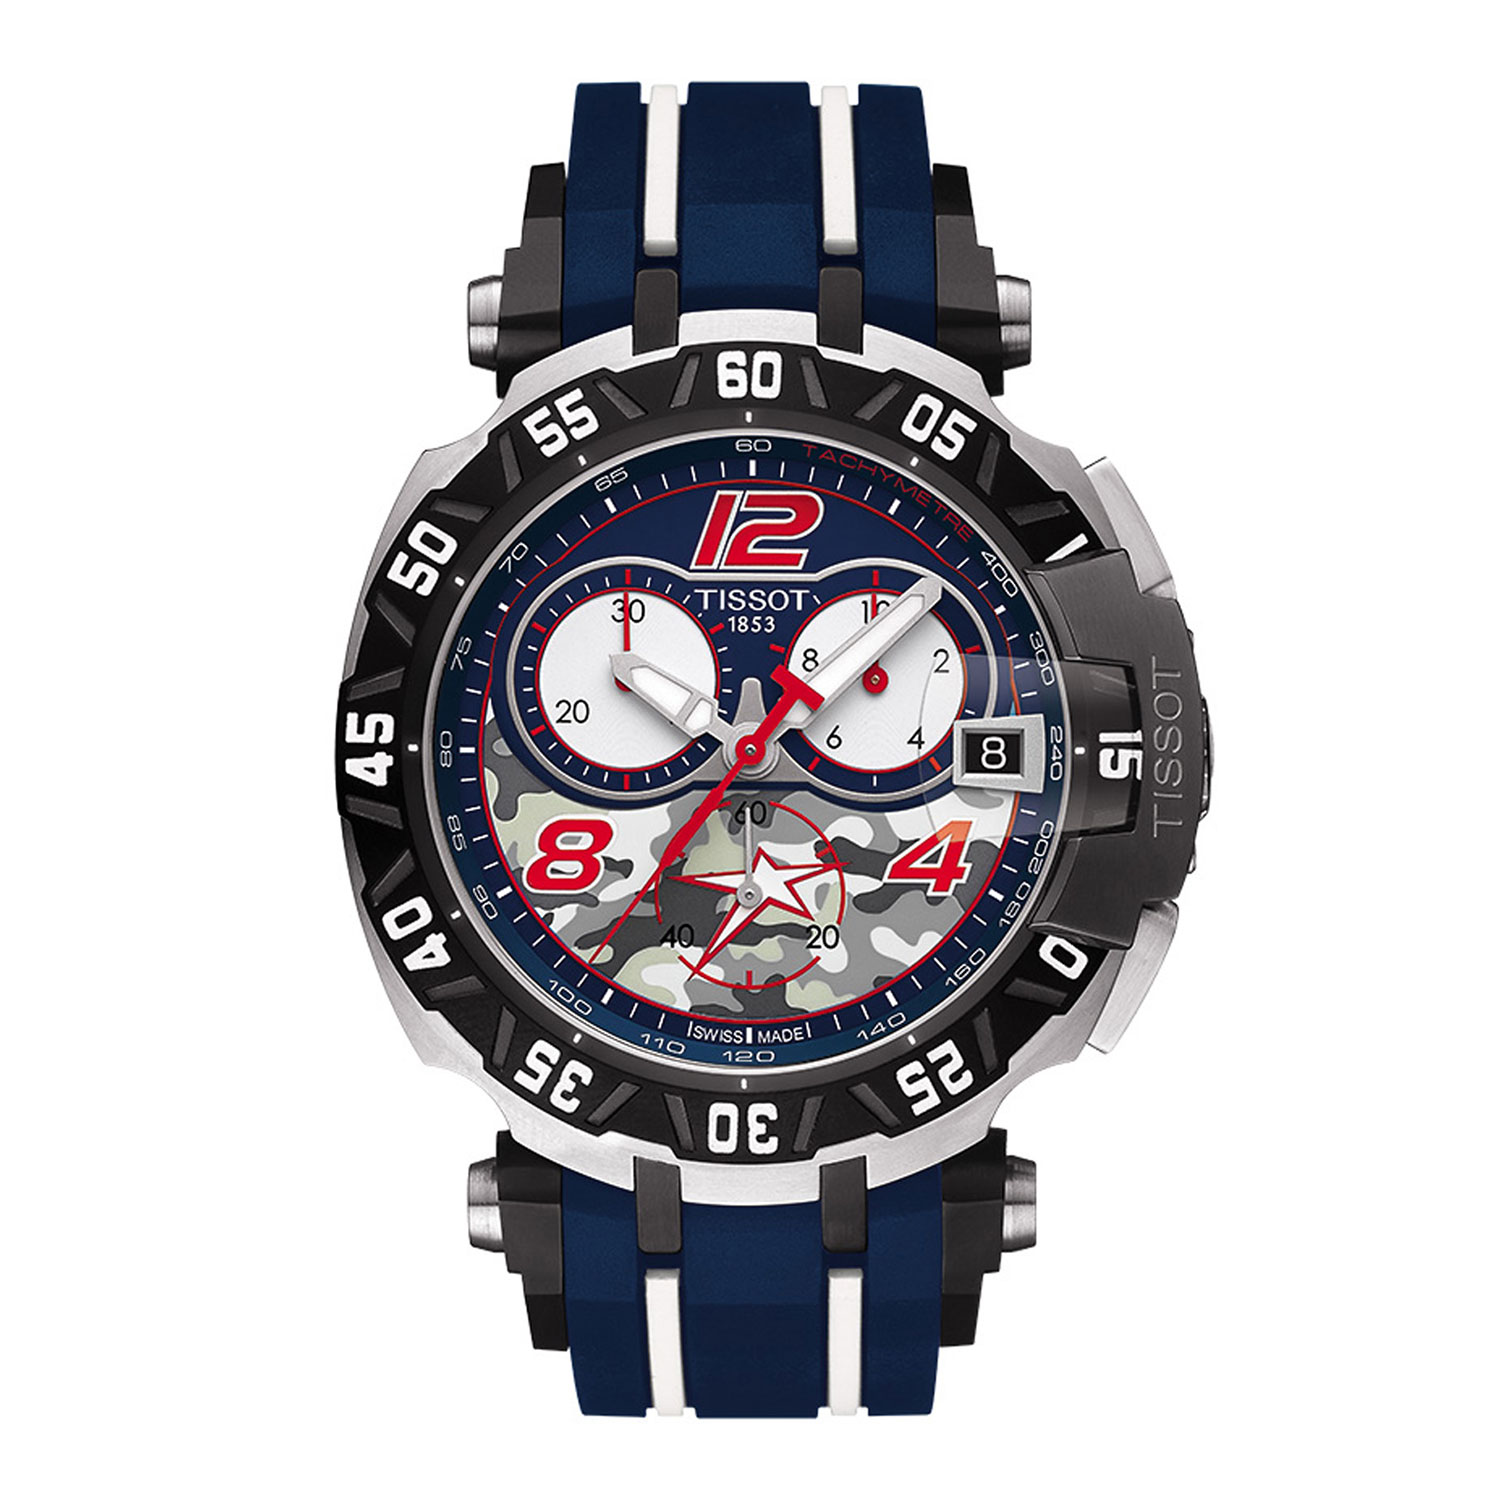 e9680dcef Tissot Limited Edition Nicky Hayden Chrono T-Race T-Sport Quartz ...